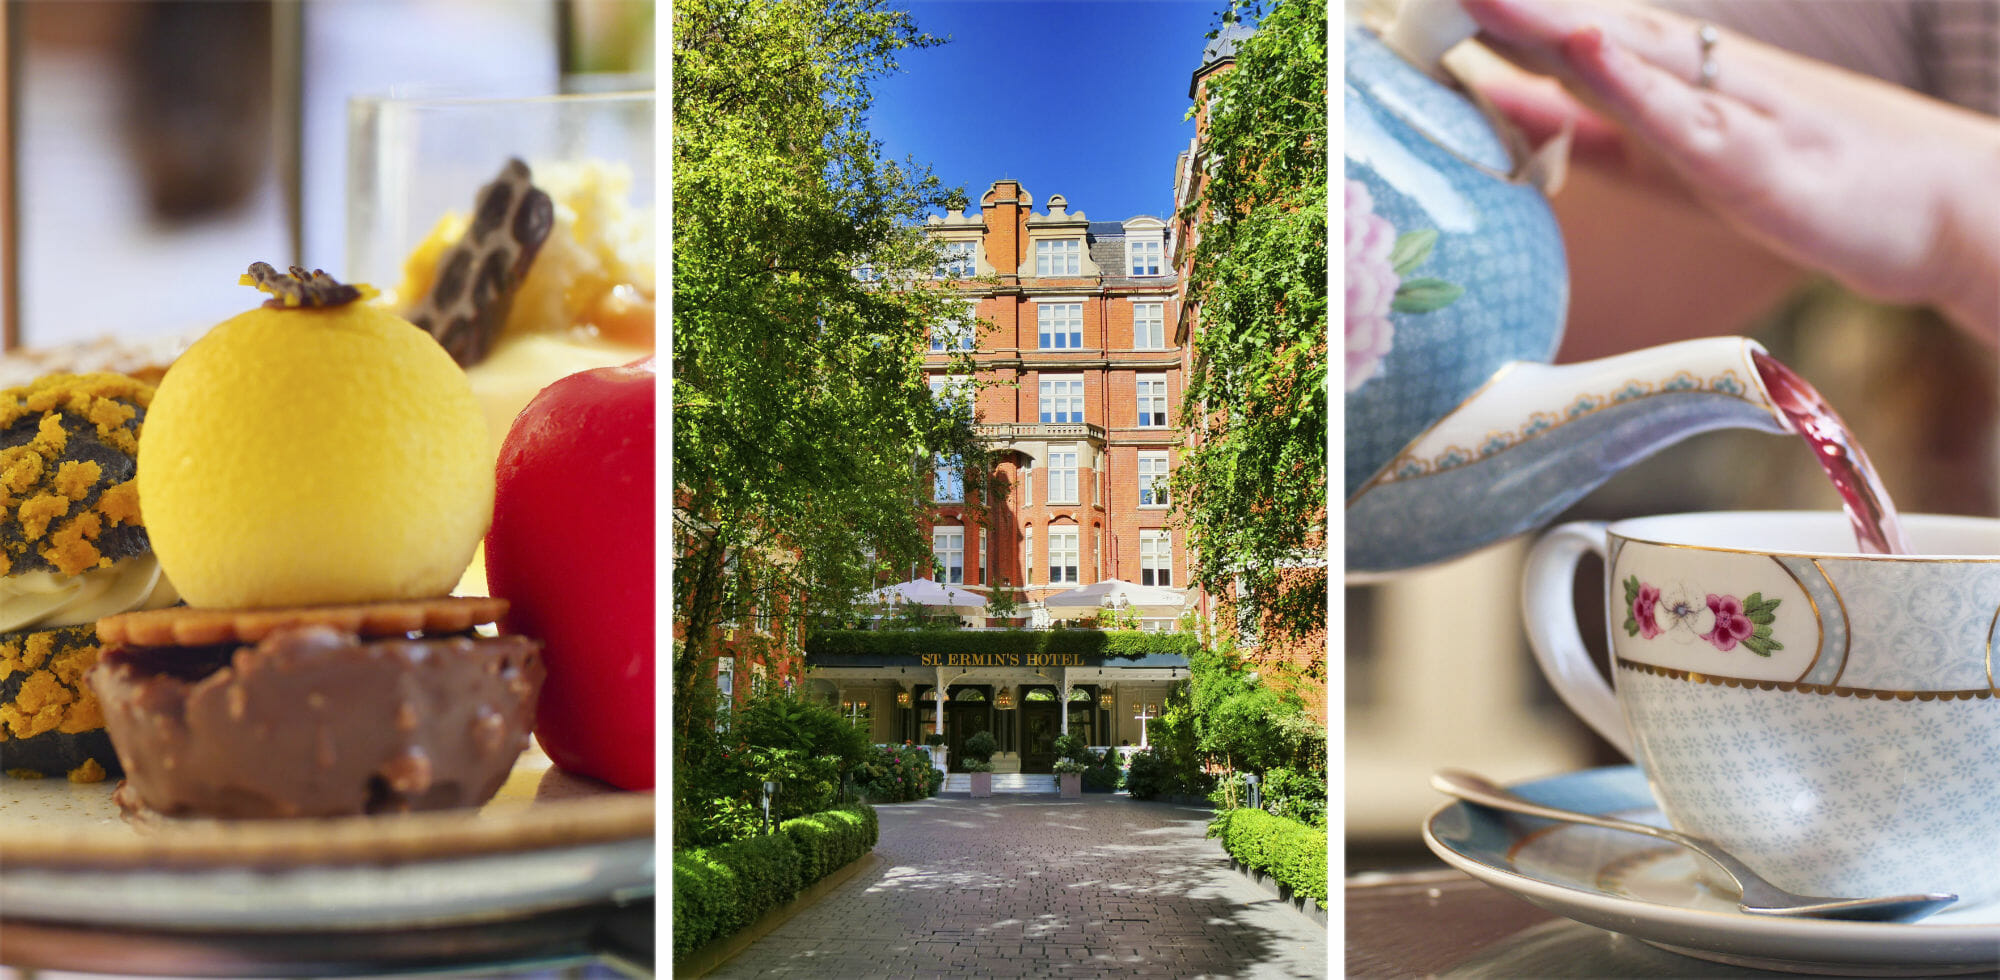 St Ermins Hotel Afternoon Tea Review